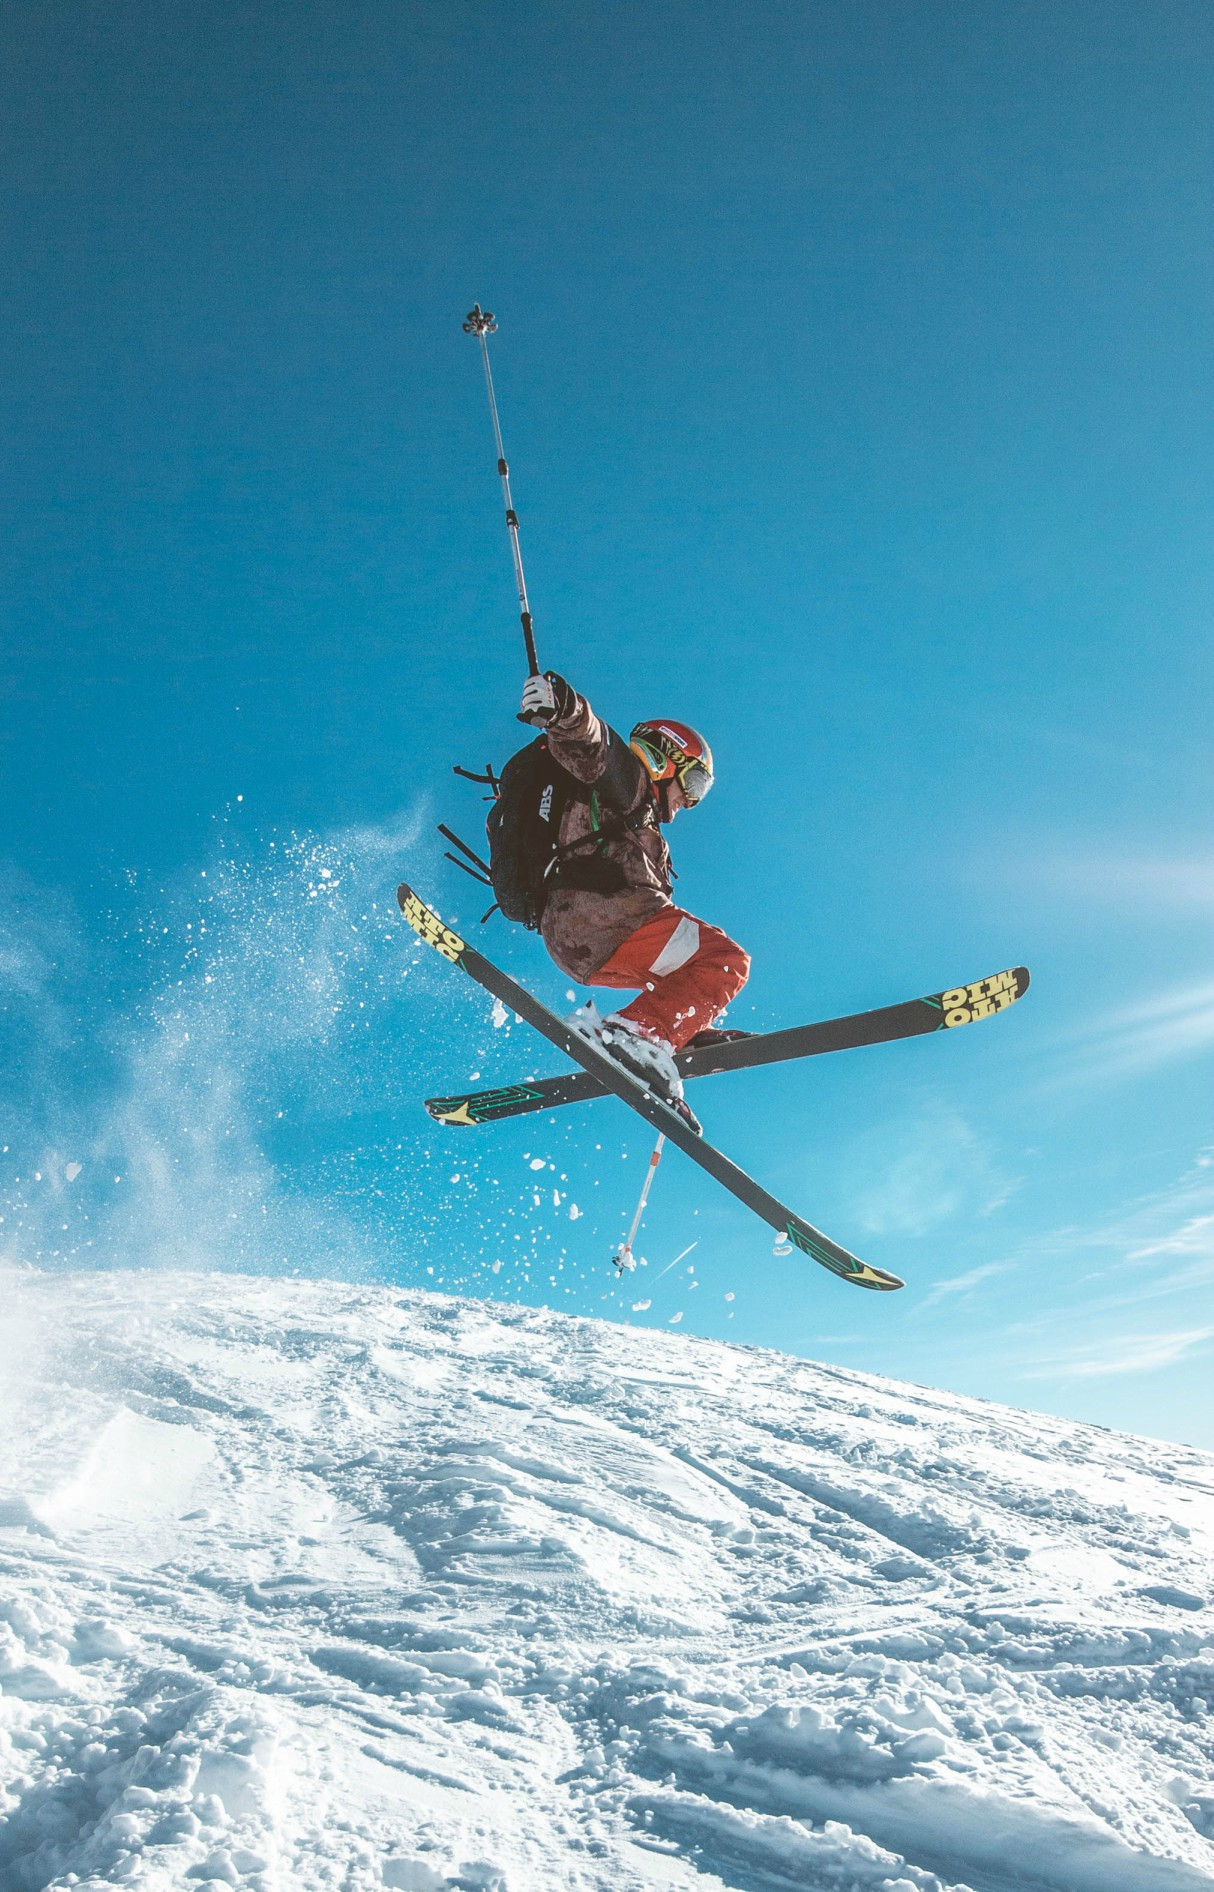 skiwear-skiing-essentials-2019-feature